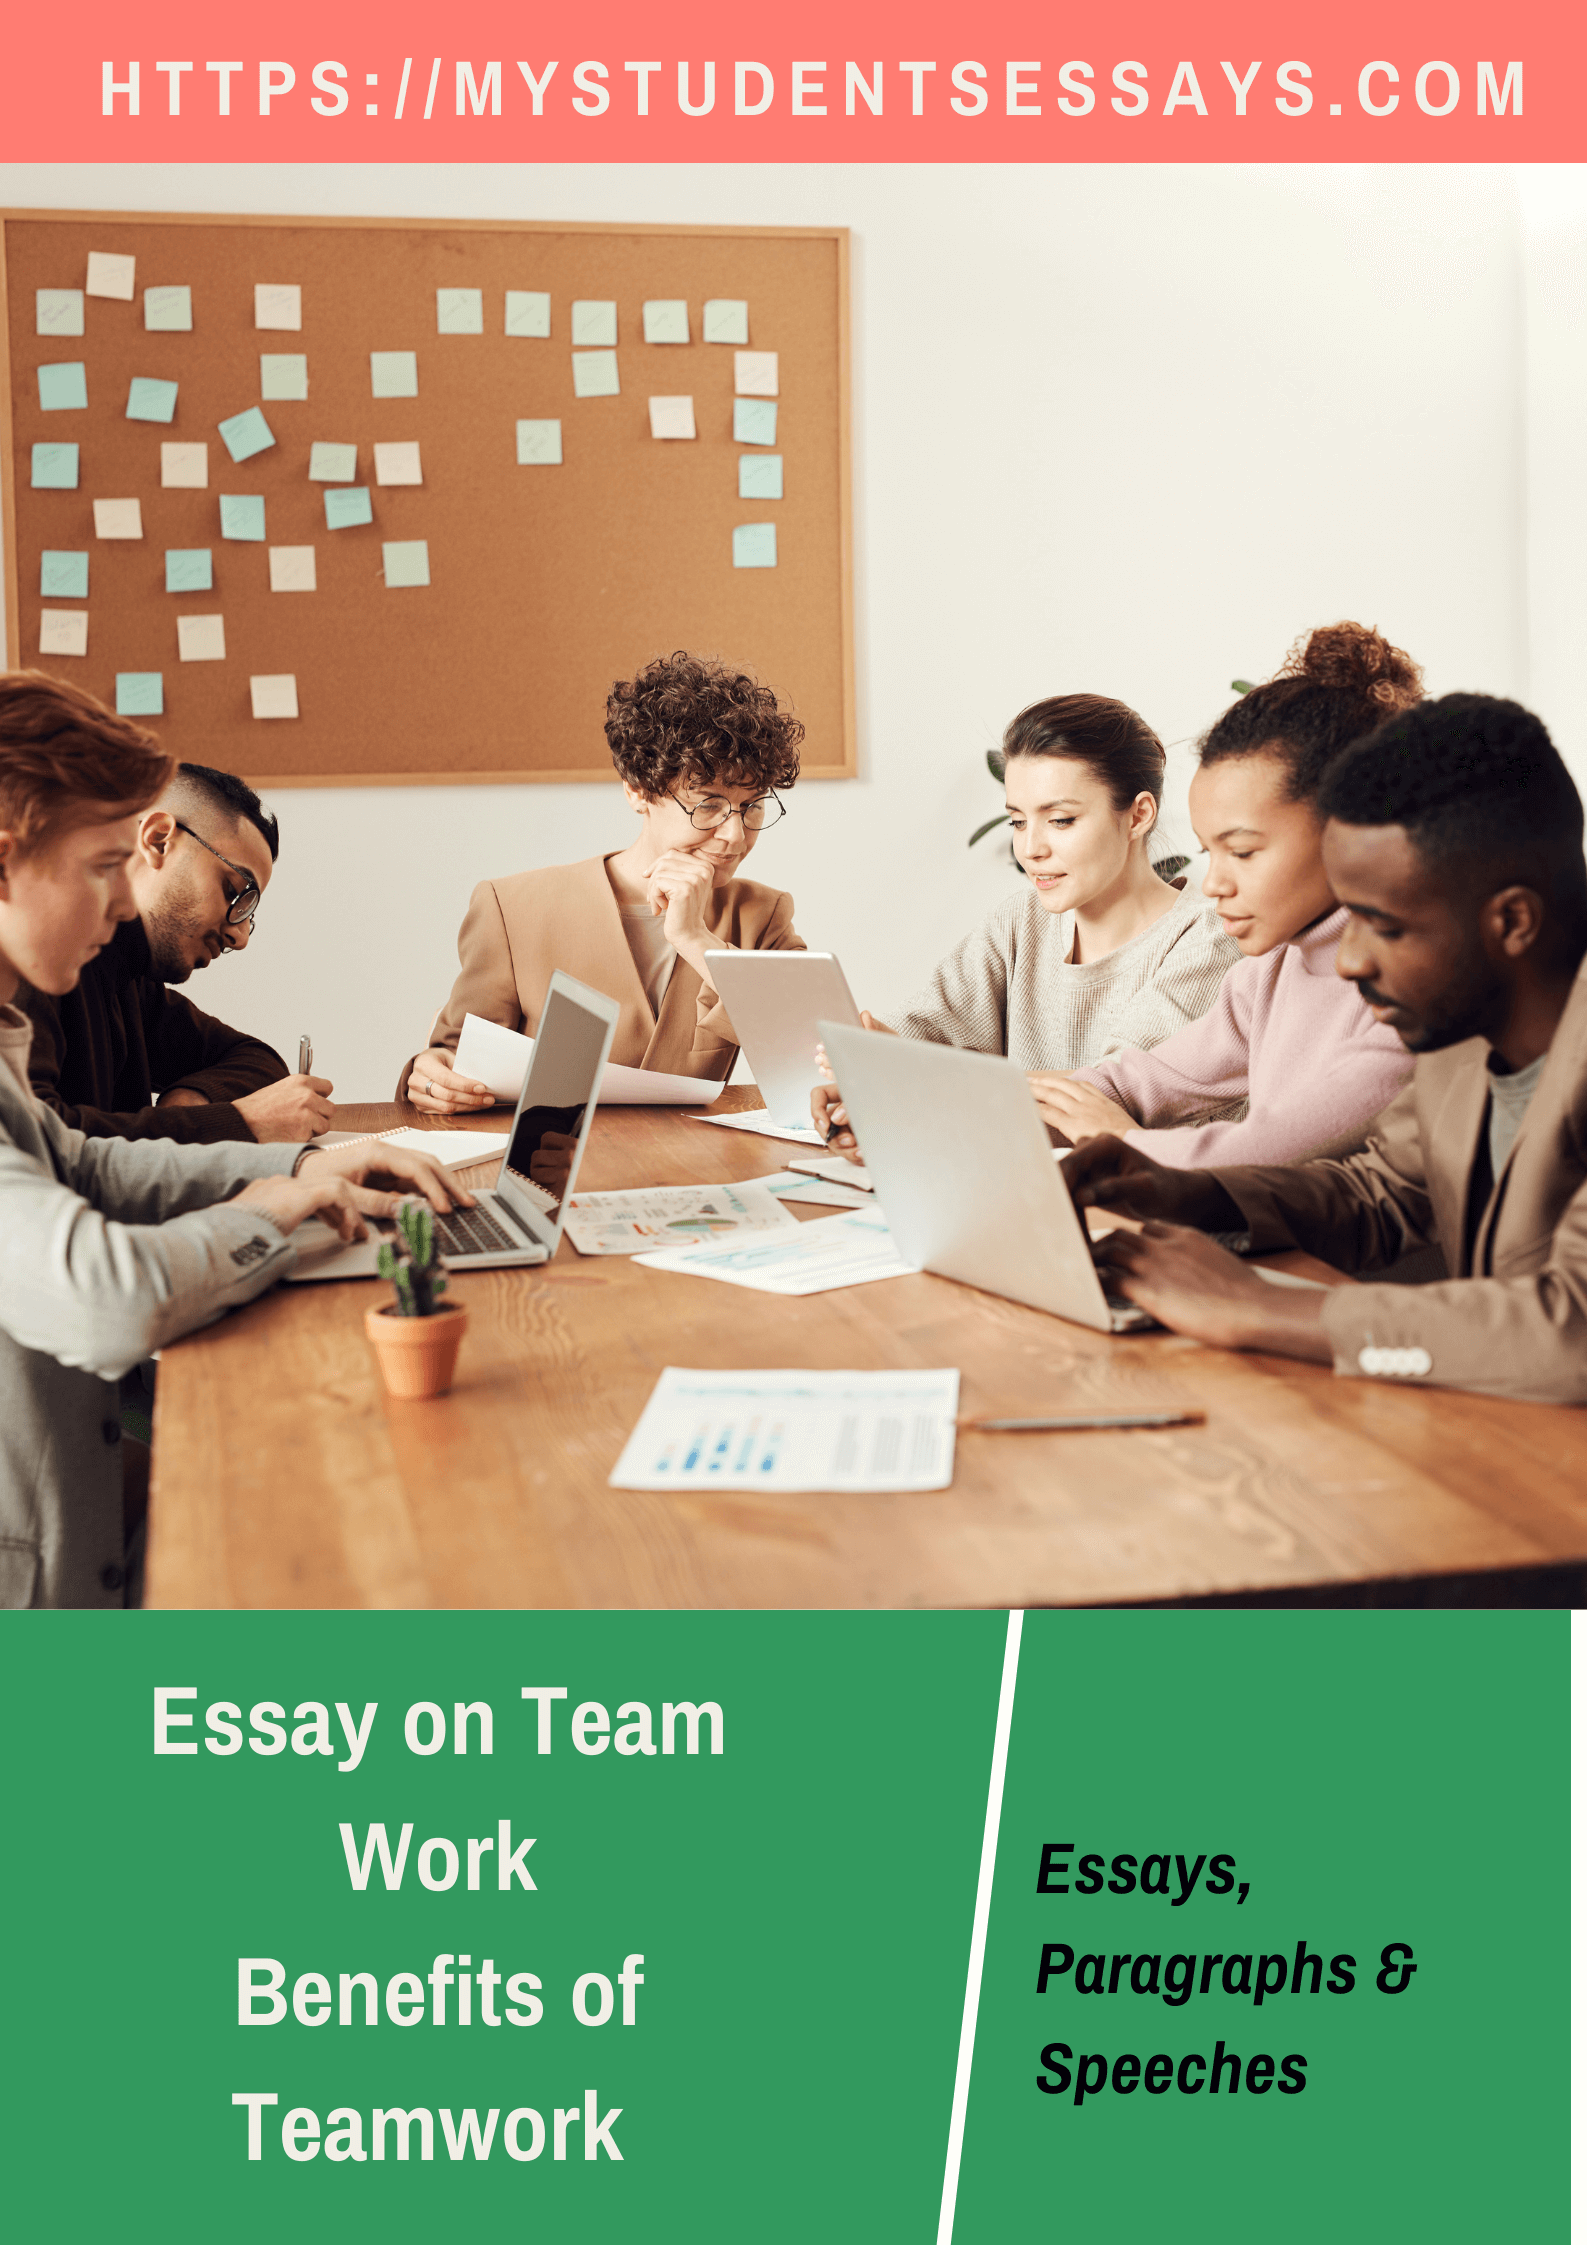 Essay on Teamwork For Students